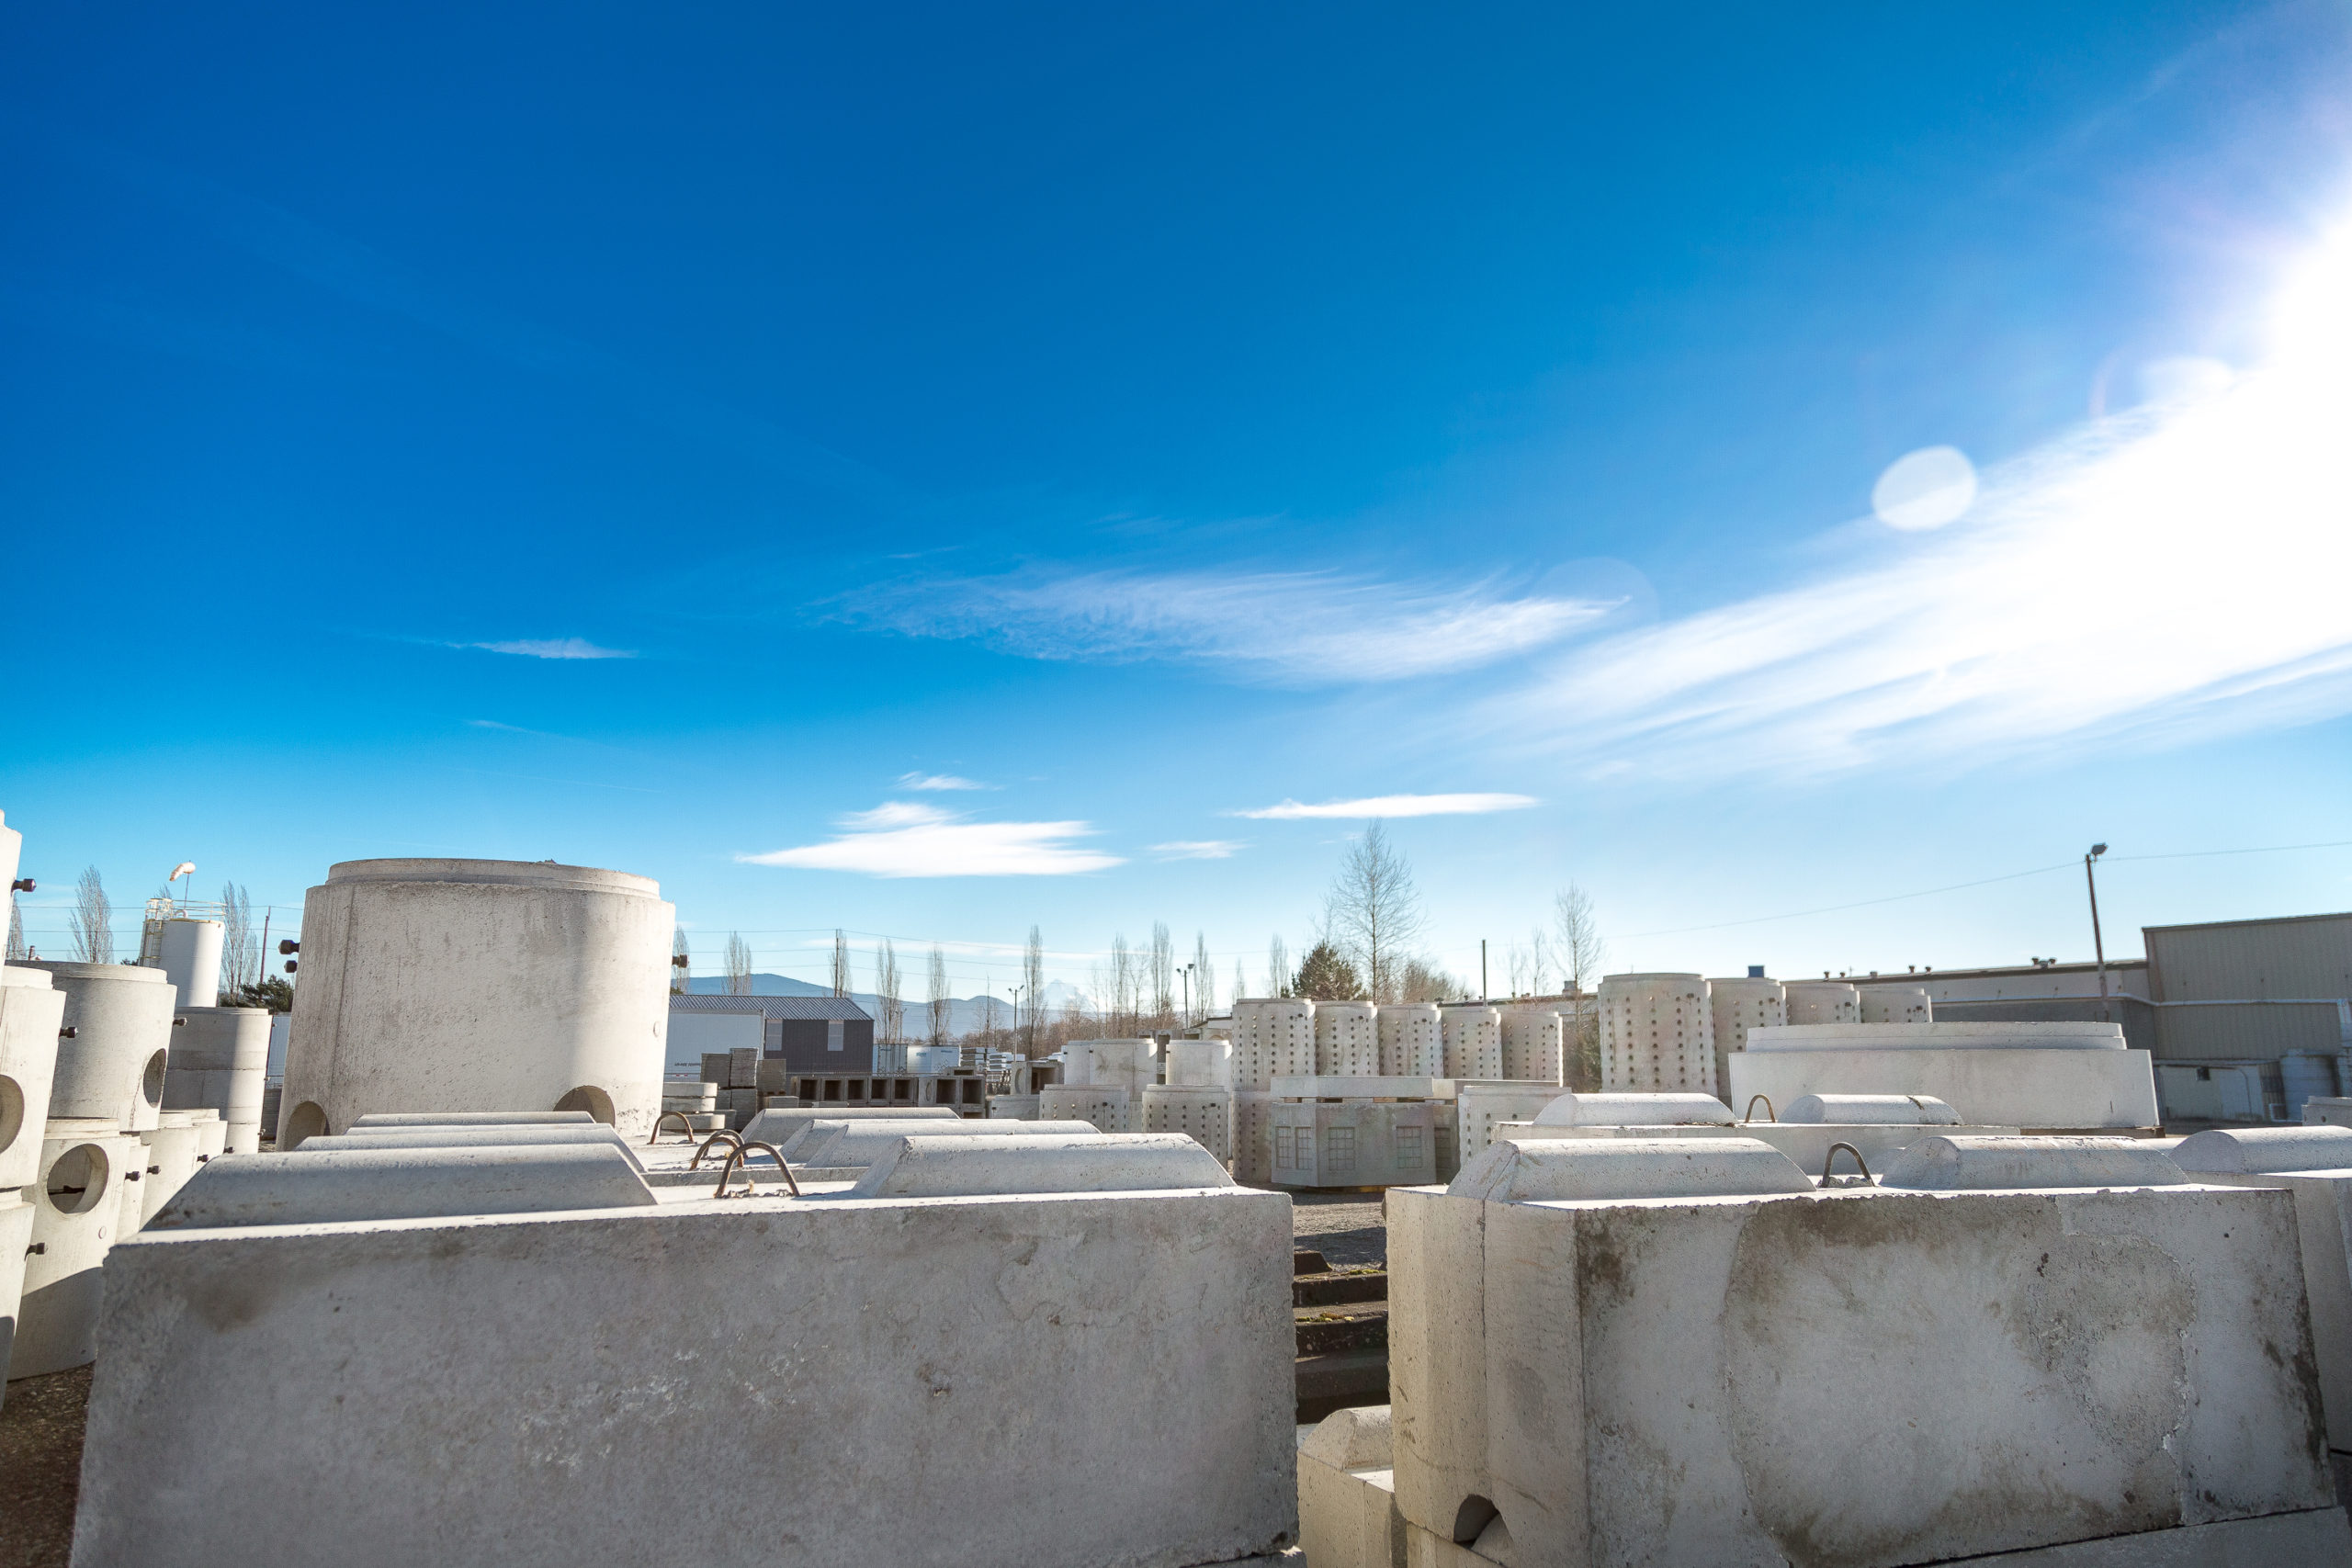 Dozens of precast concrete products in a product yard